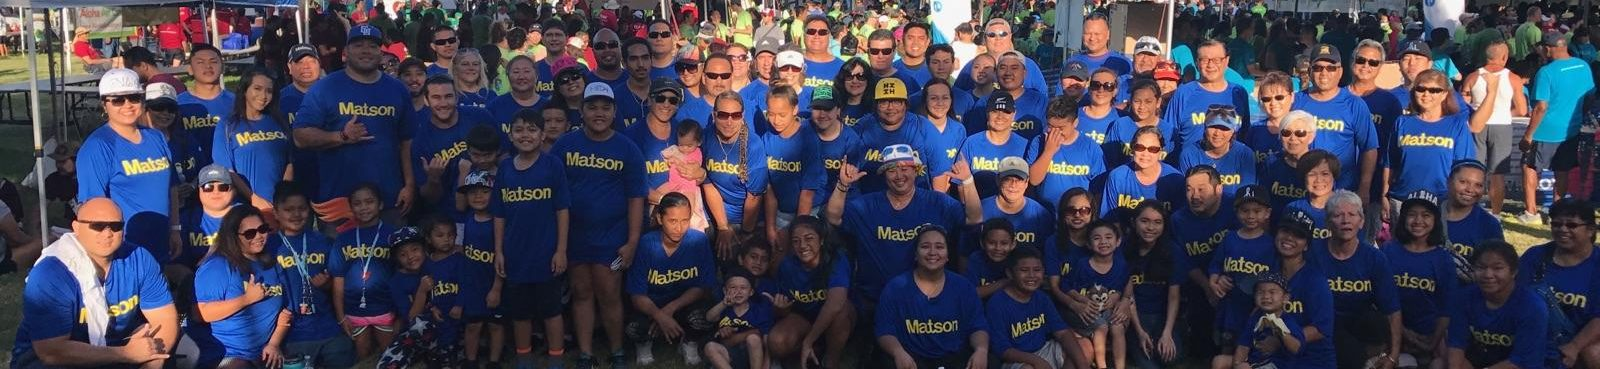 Matson participants at 2017 Heart and Stroke Walk in Honolulu